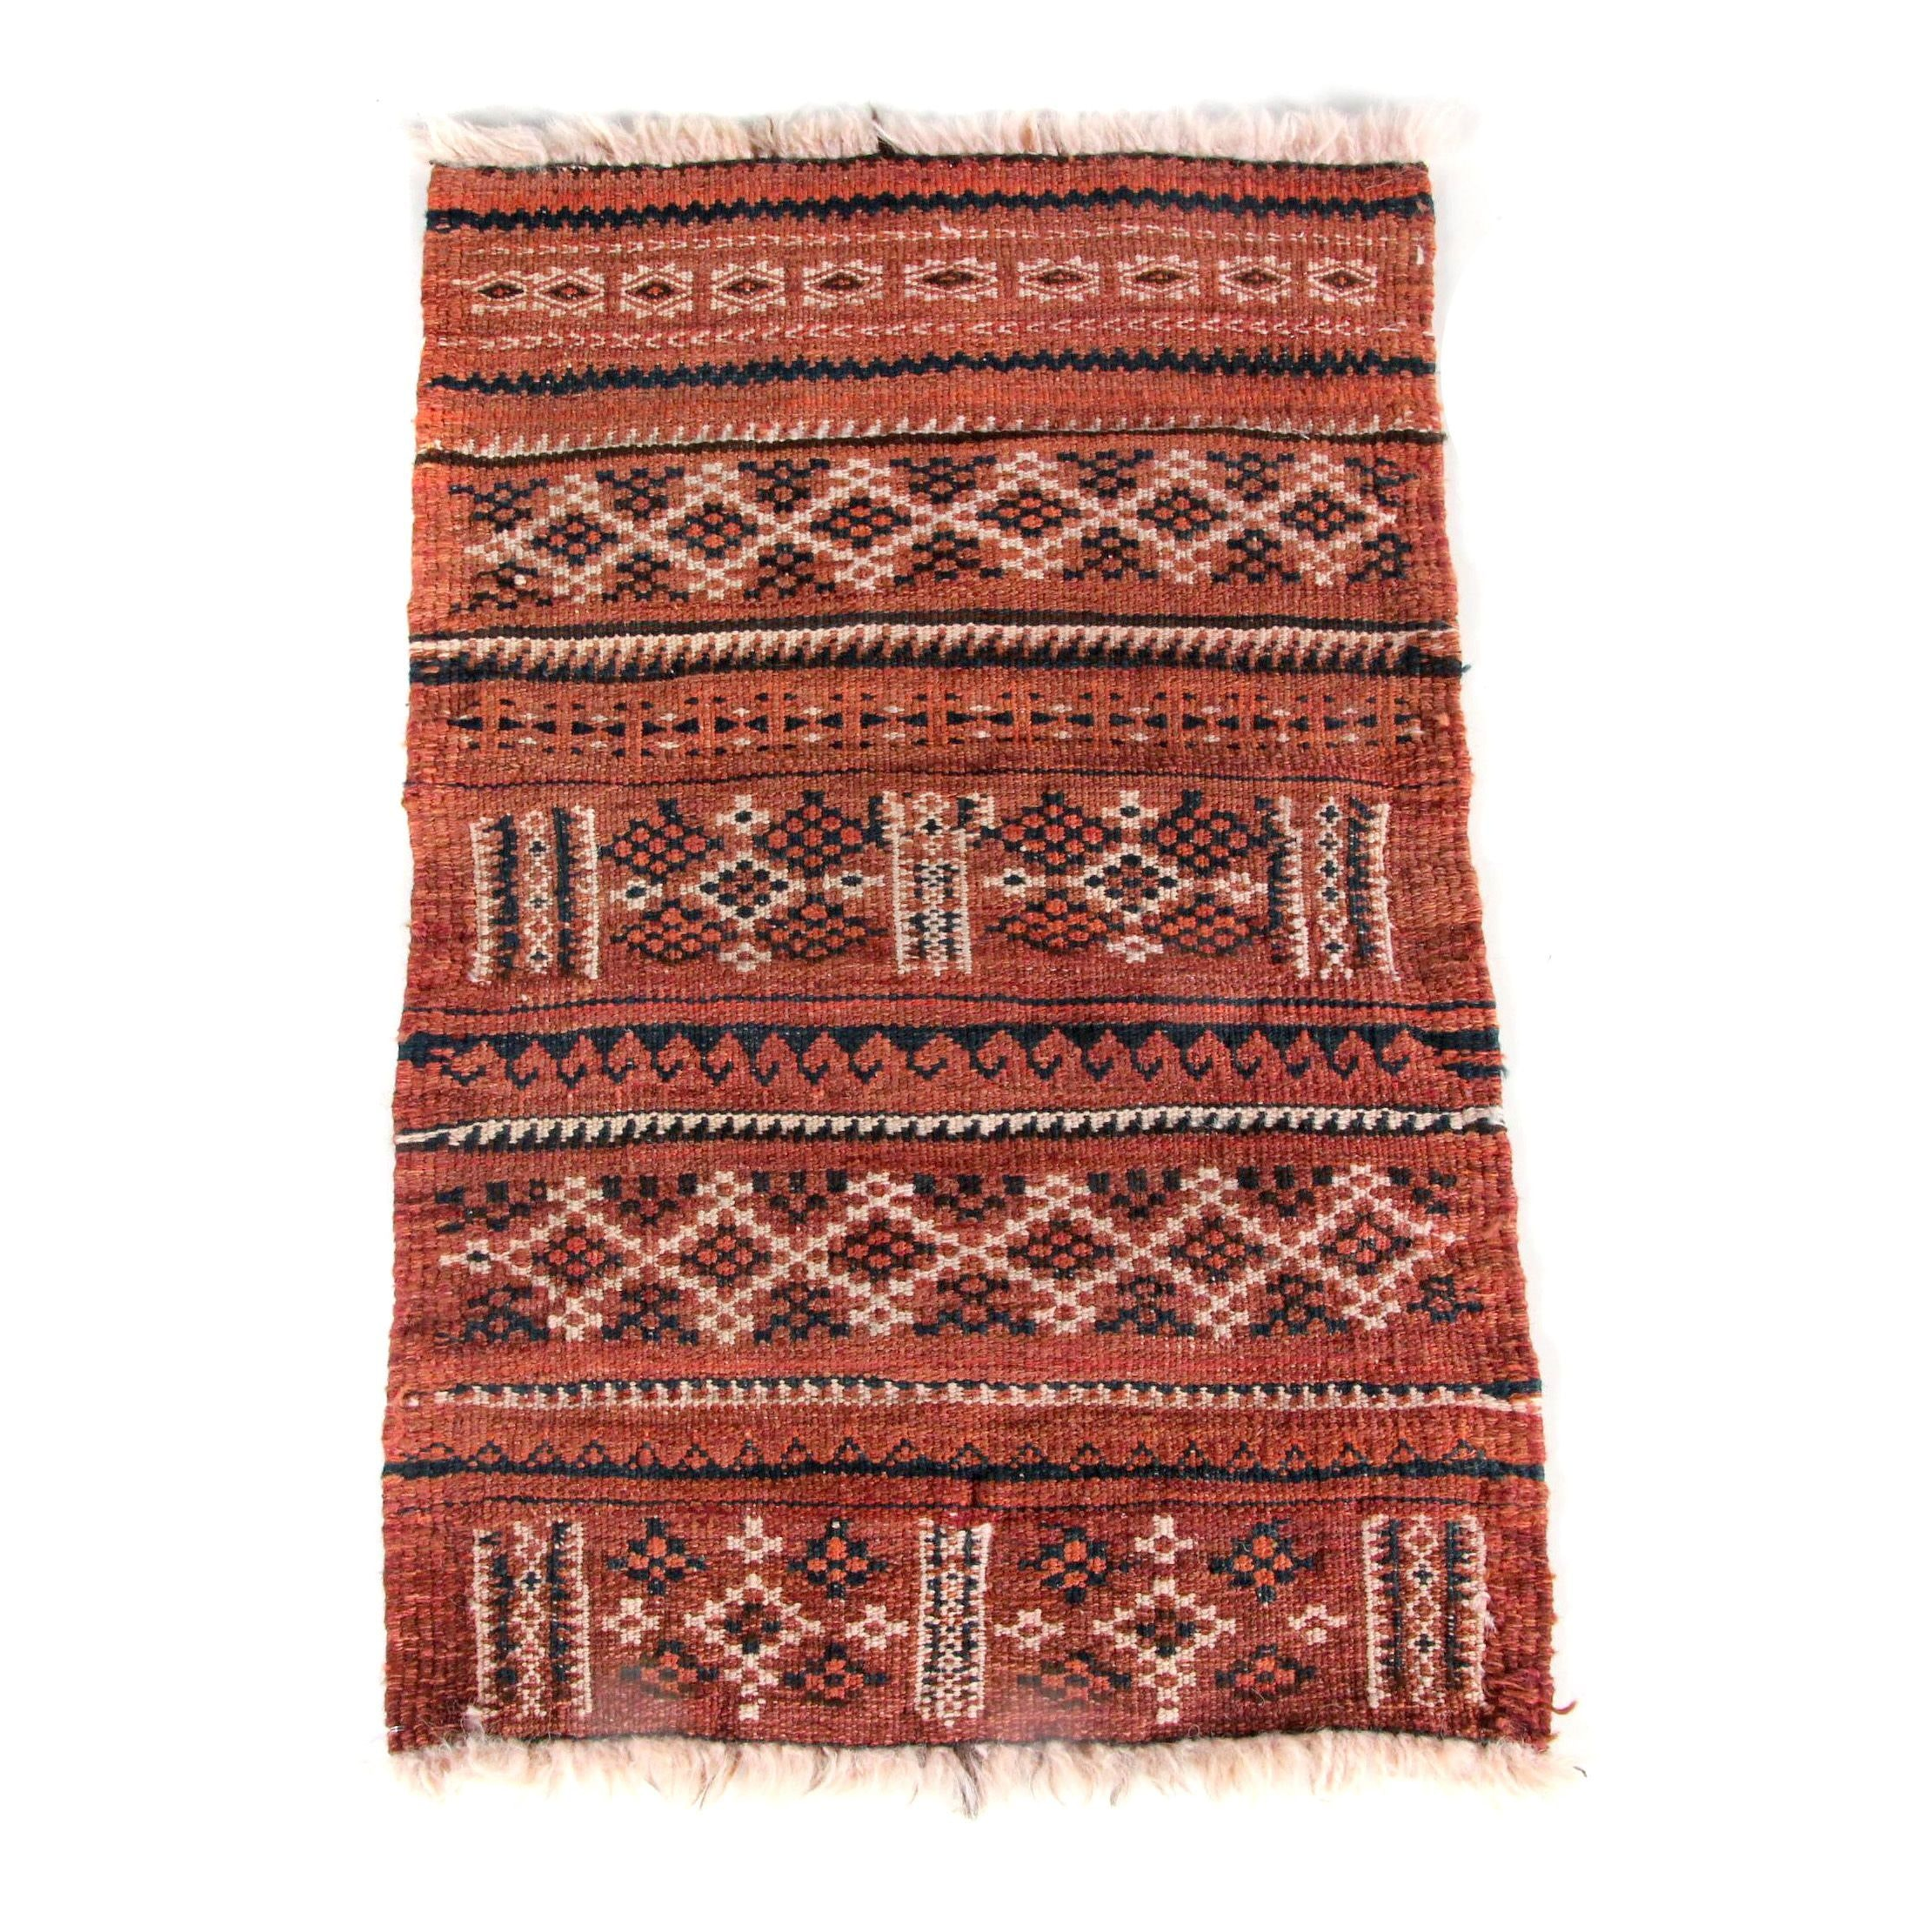 Handwoven Moroccan Accent Rug